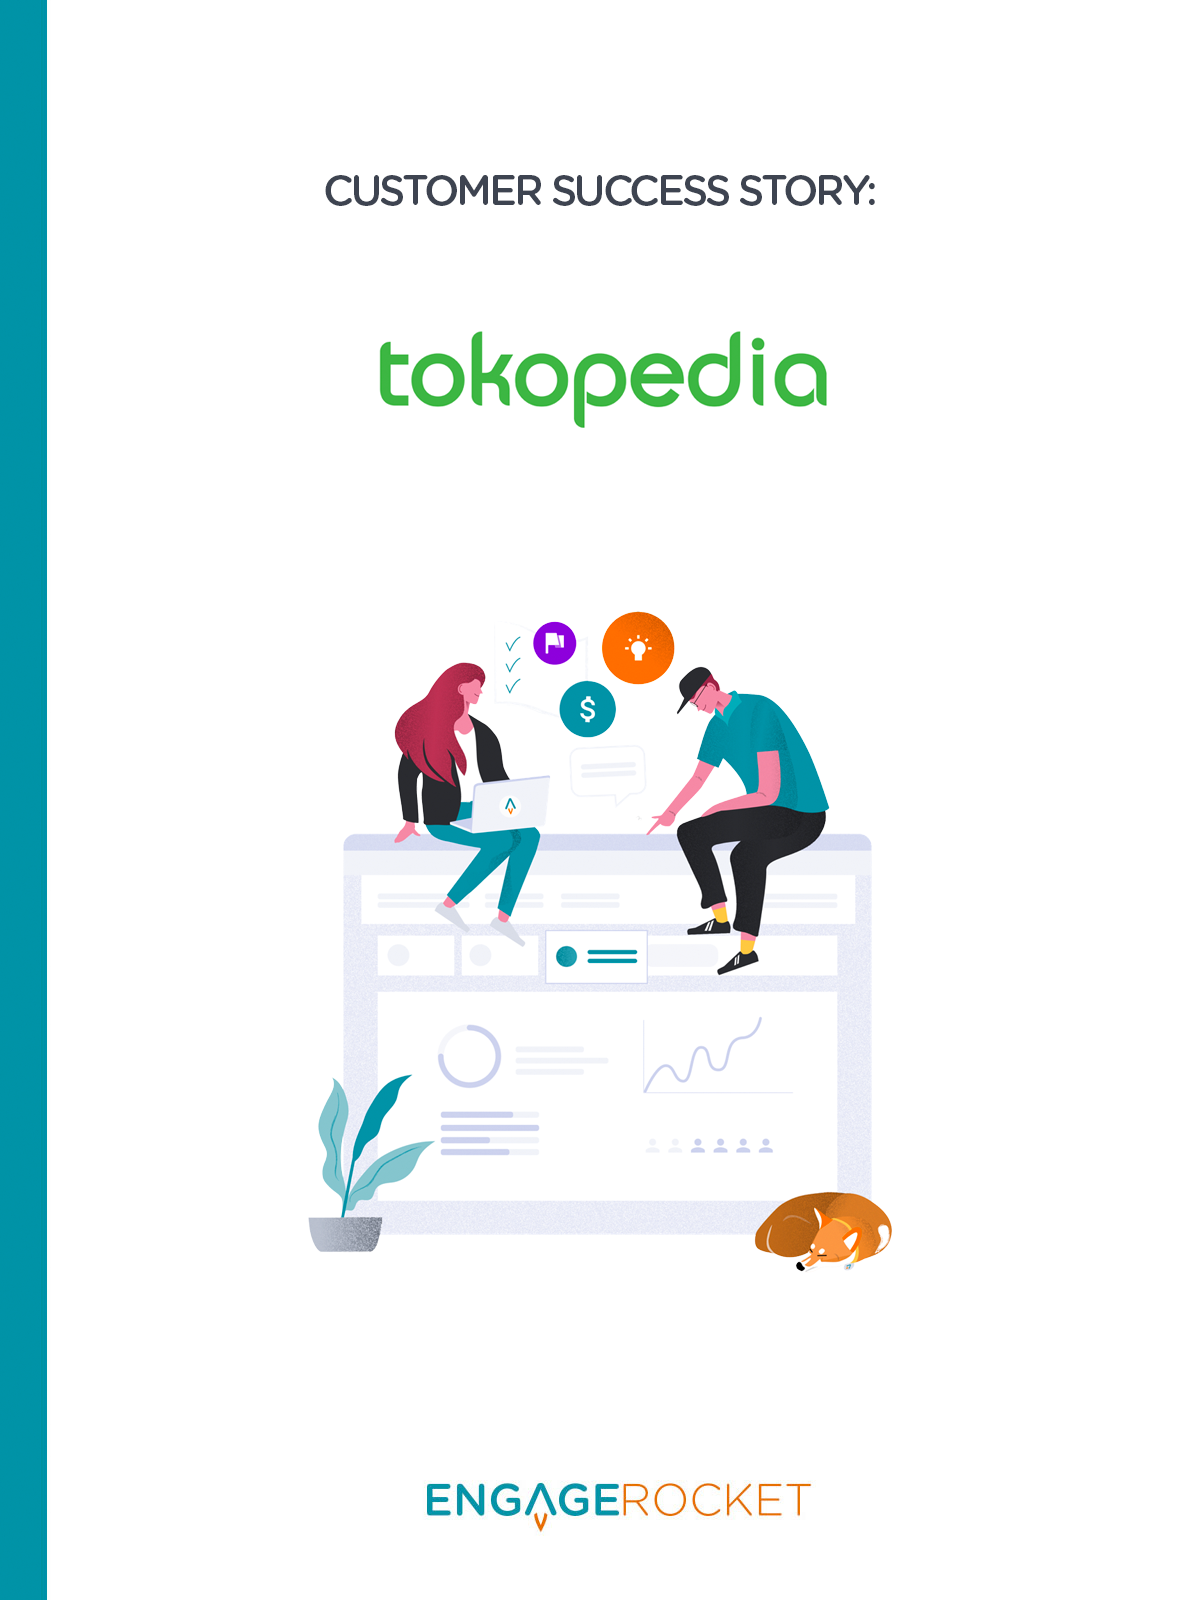 tokopedia employee